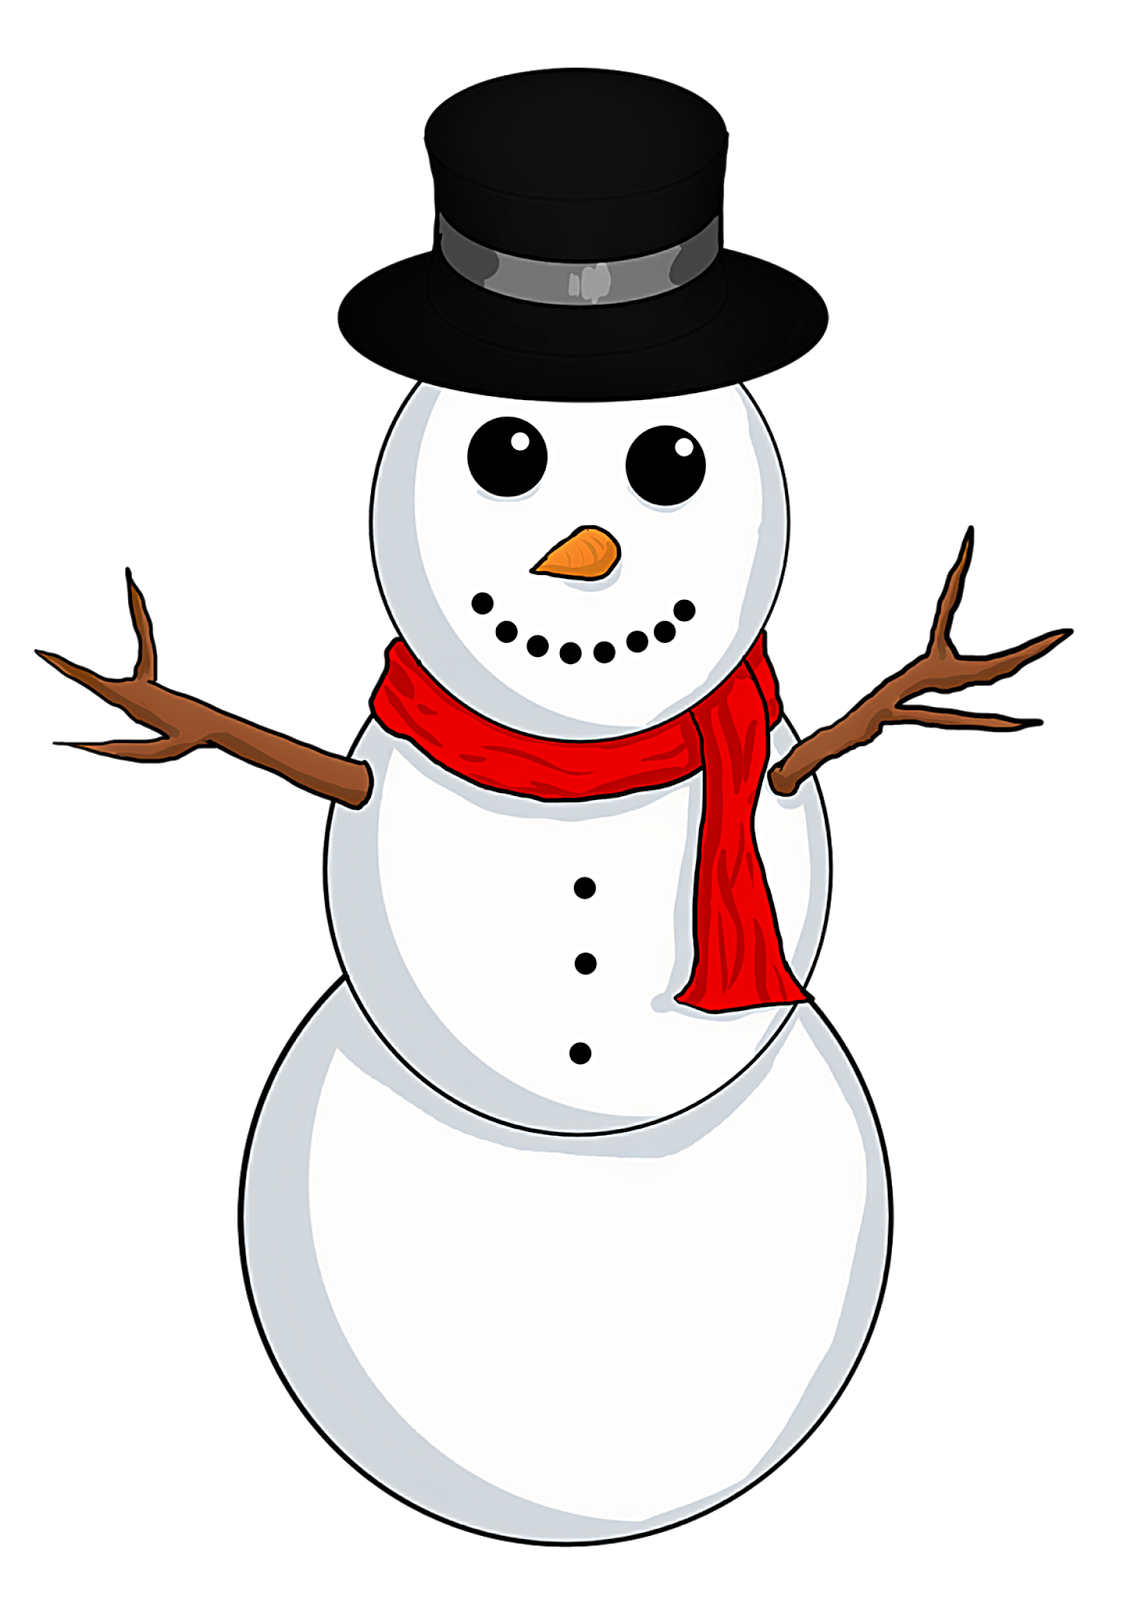 Snowman clipart Clipart Snowman Snowman clipart Cliparting